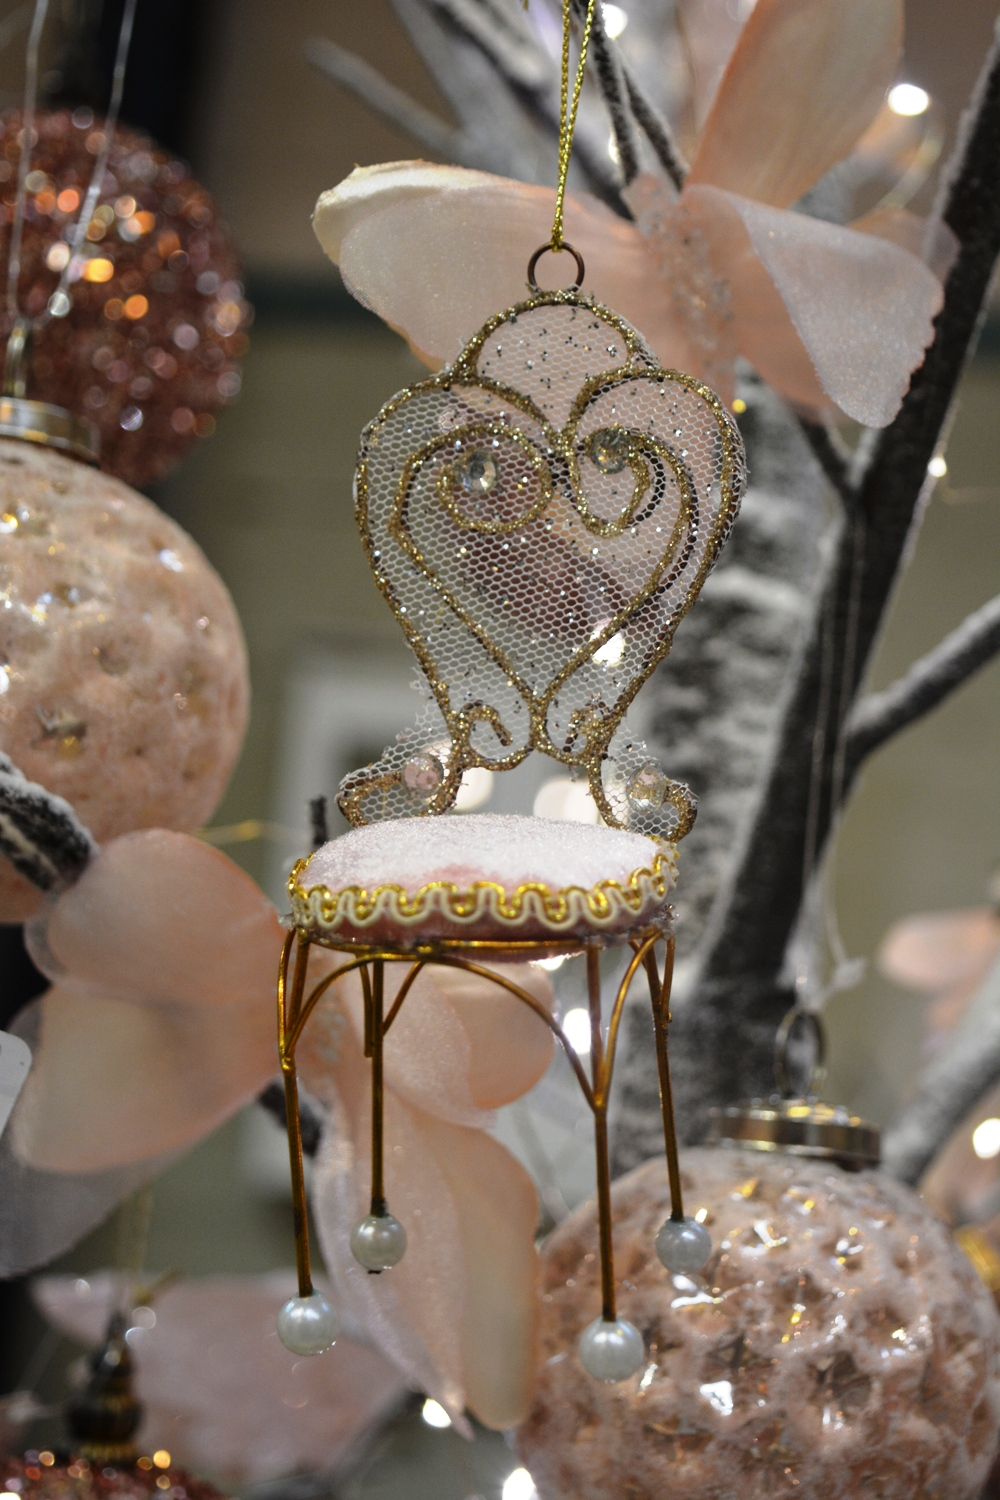 Fairytale Chair Decoration - €3.90